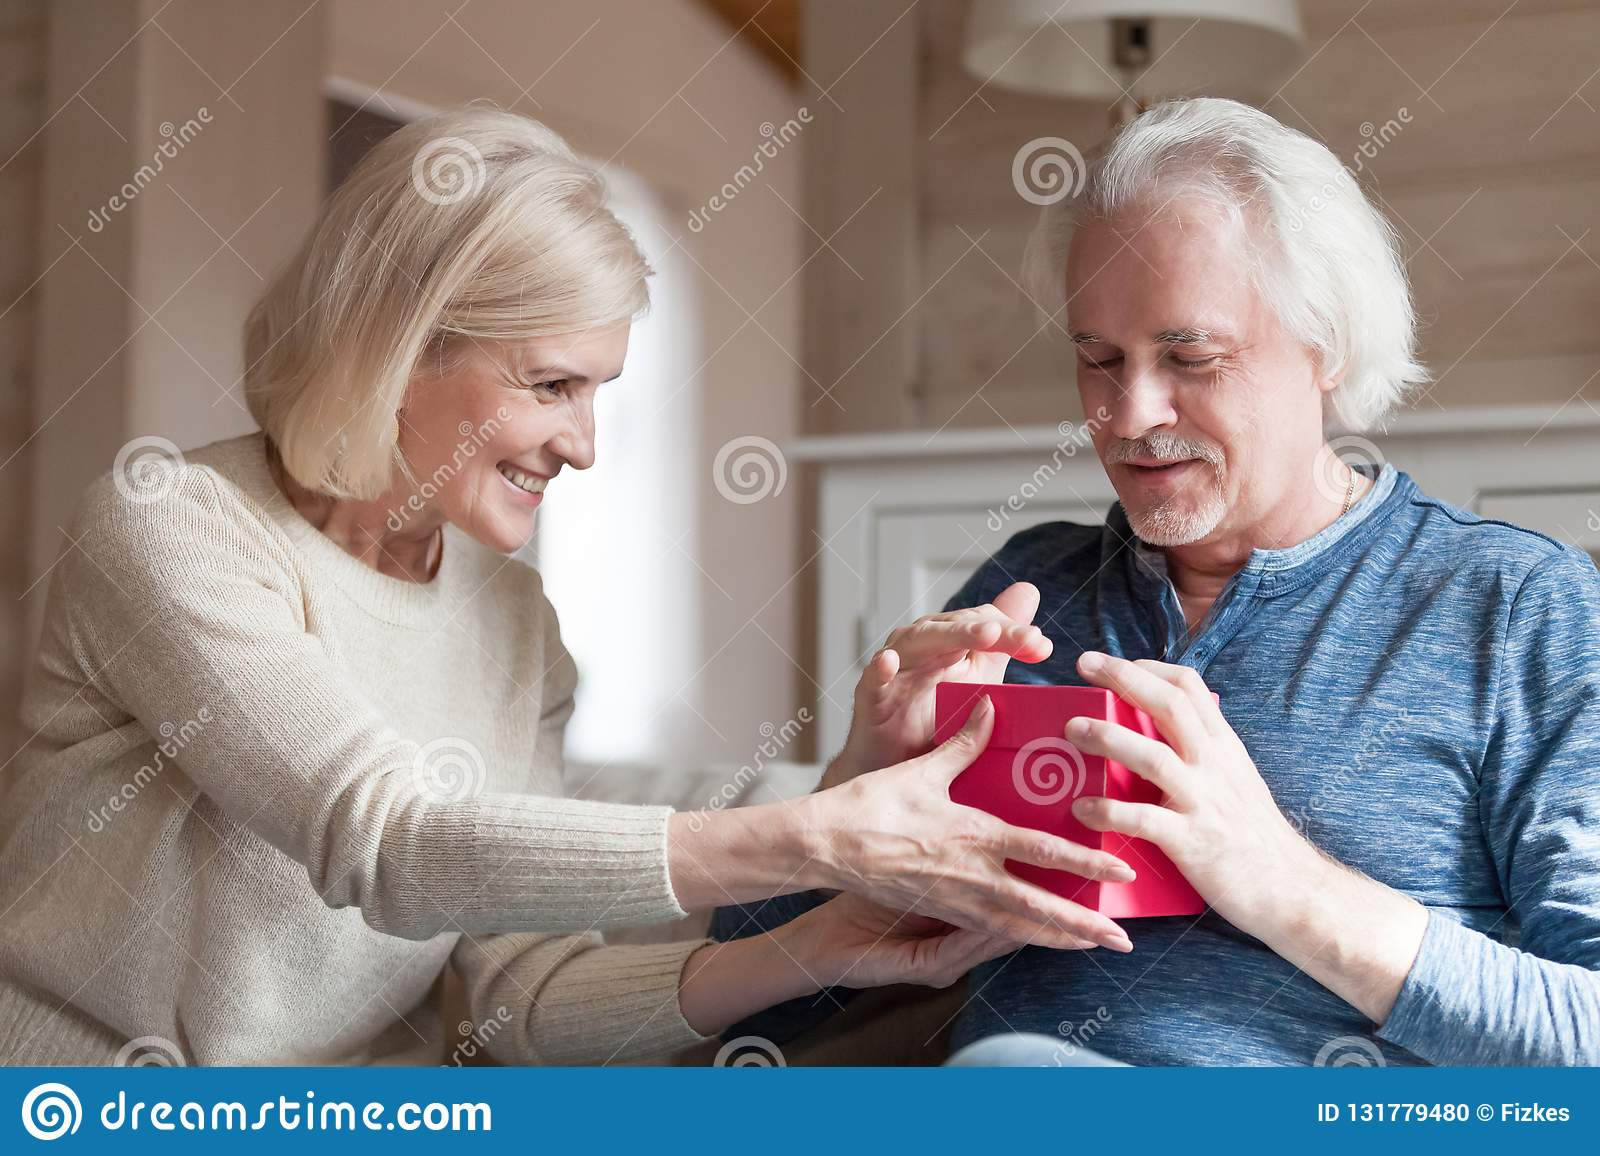 Smiling Aged Wife Making Surprise Presenting Gift To